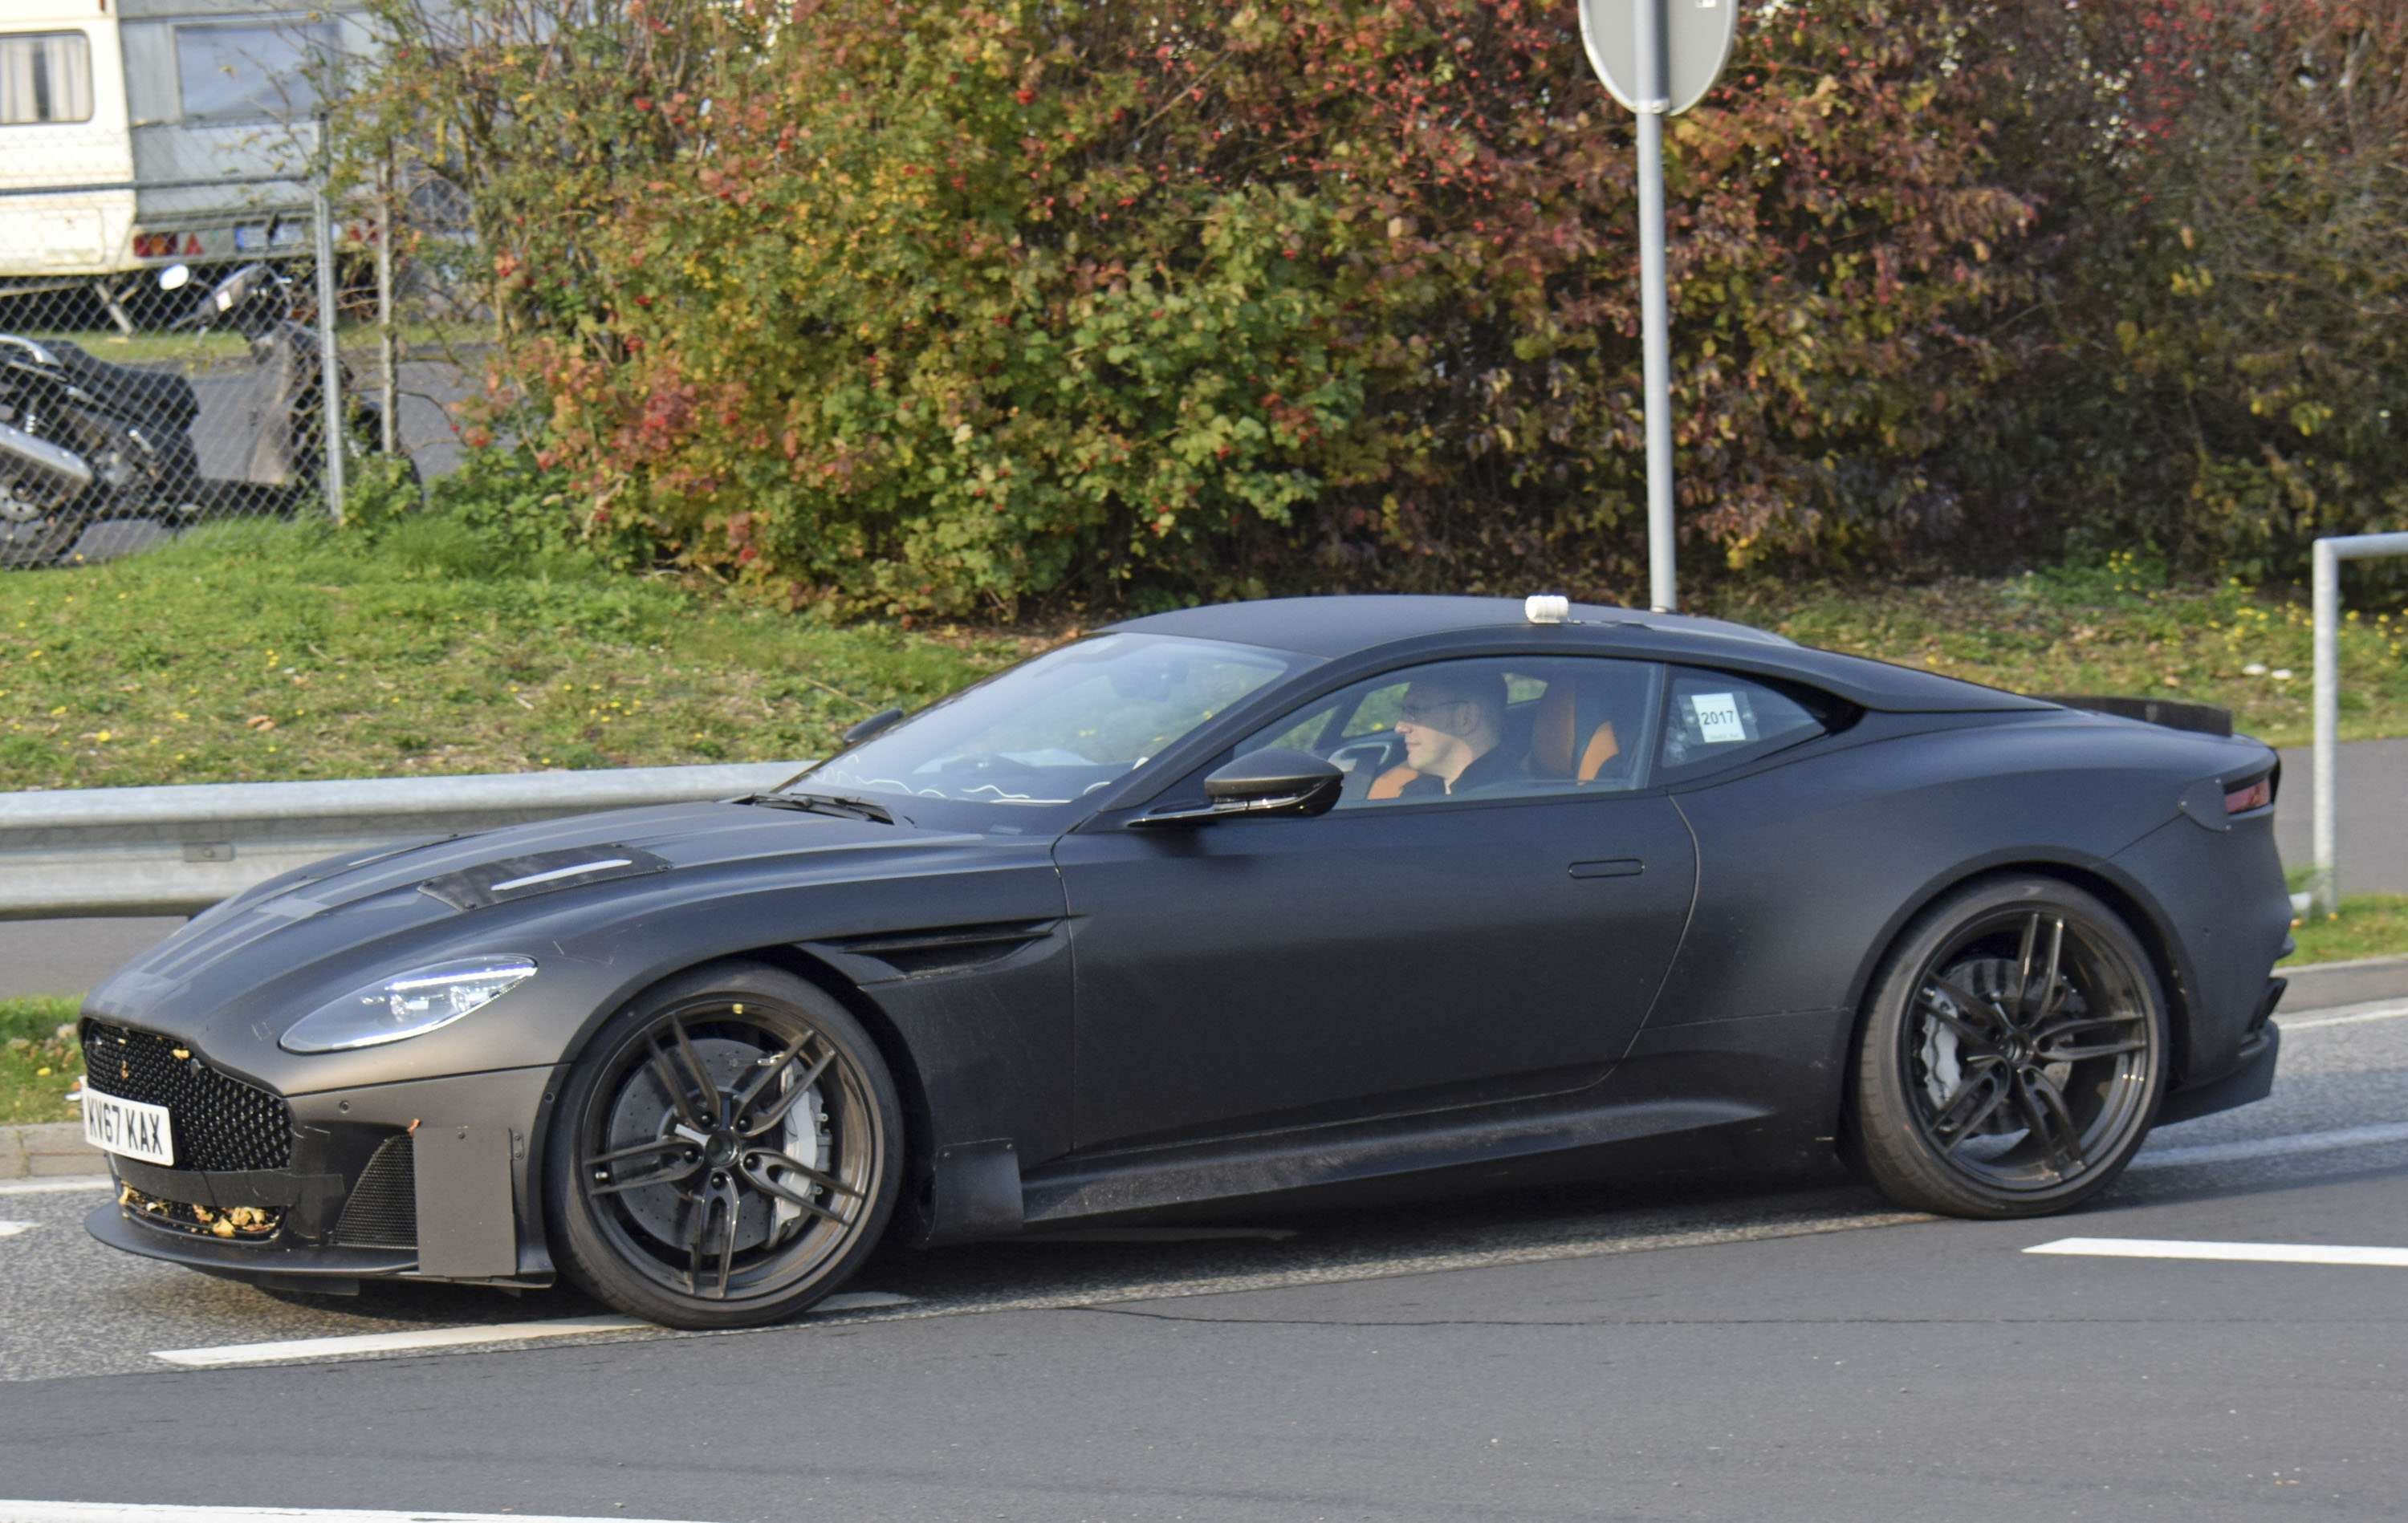 60 New 2019 Aston Martin Db9 Photos with 2019 Aston Martin Db9